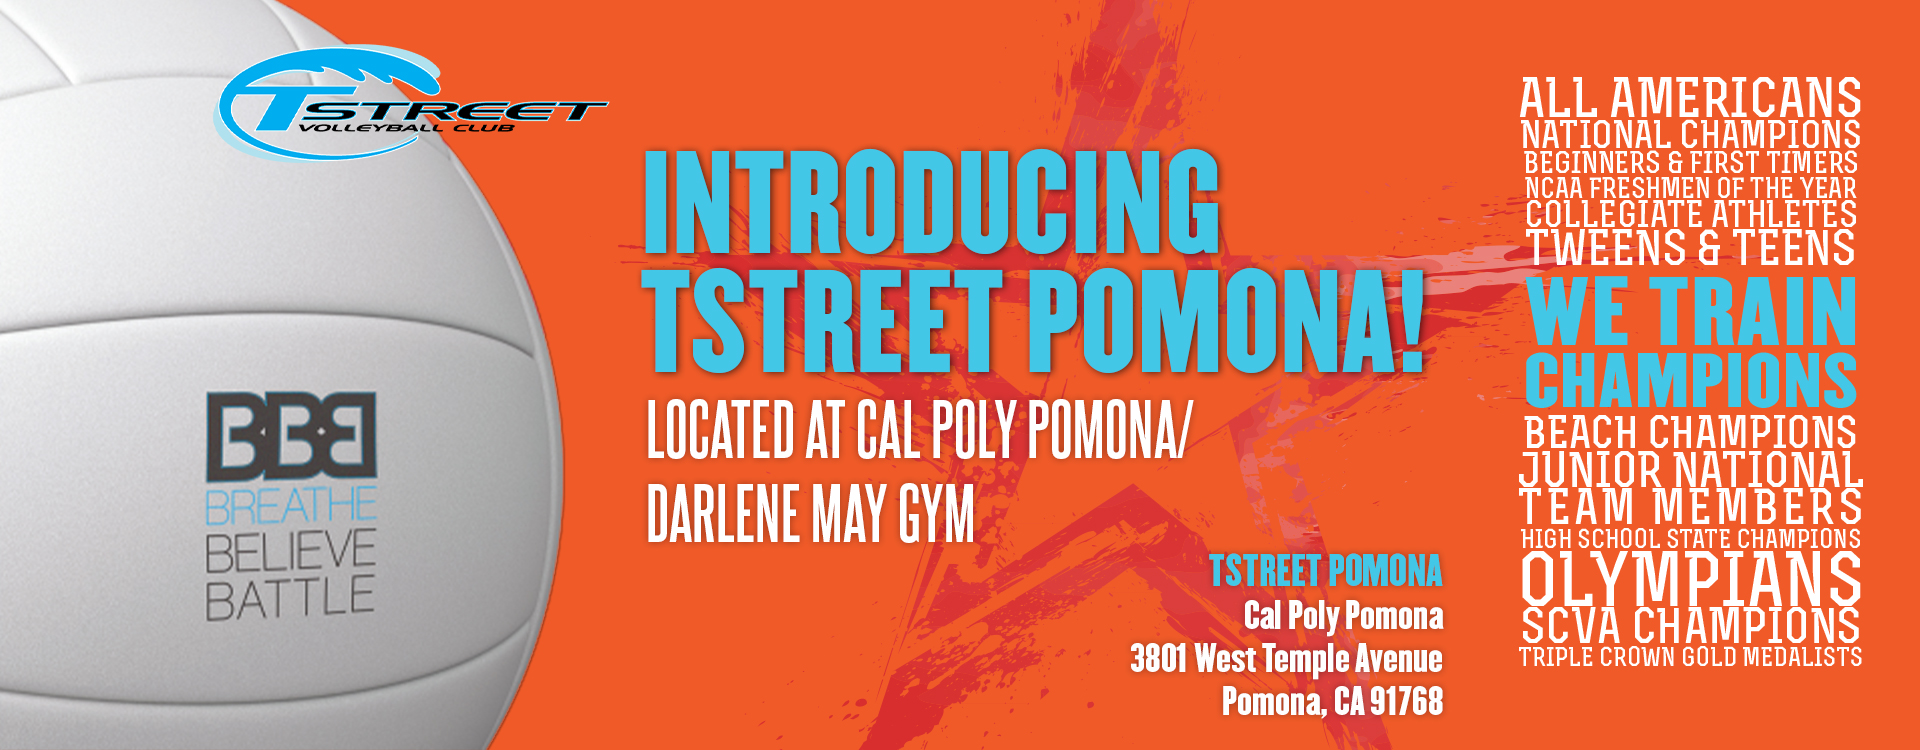 Introducing Tstreet Pomona!